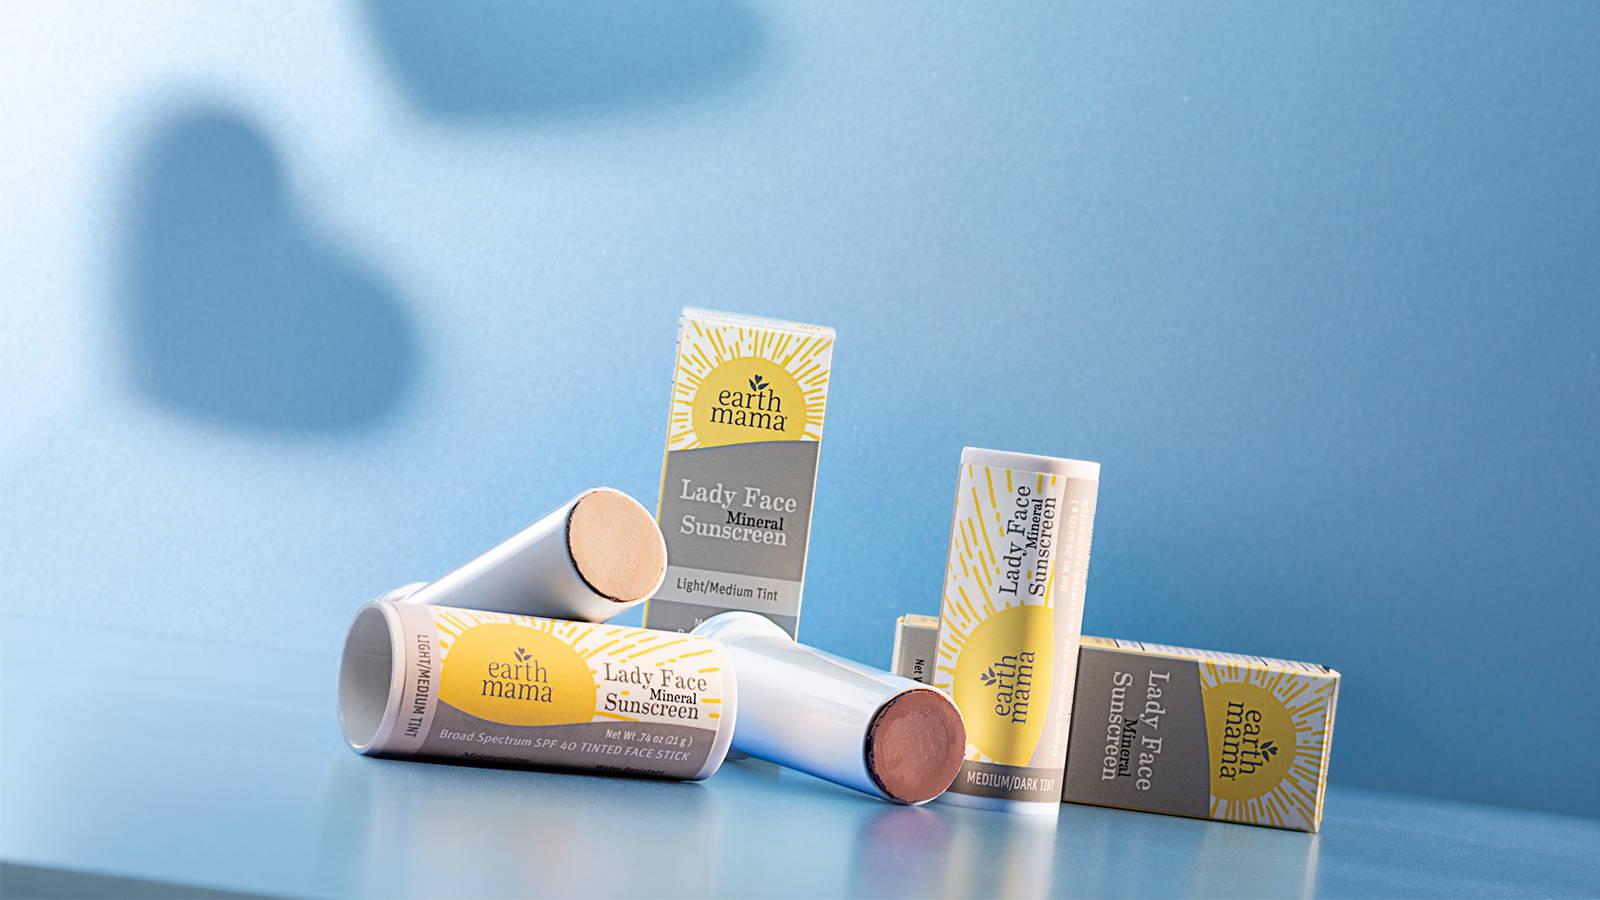 Lady Face Mineral Sunscreen